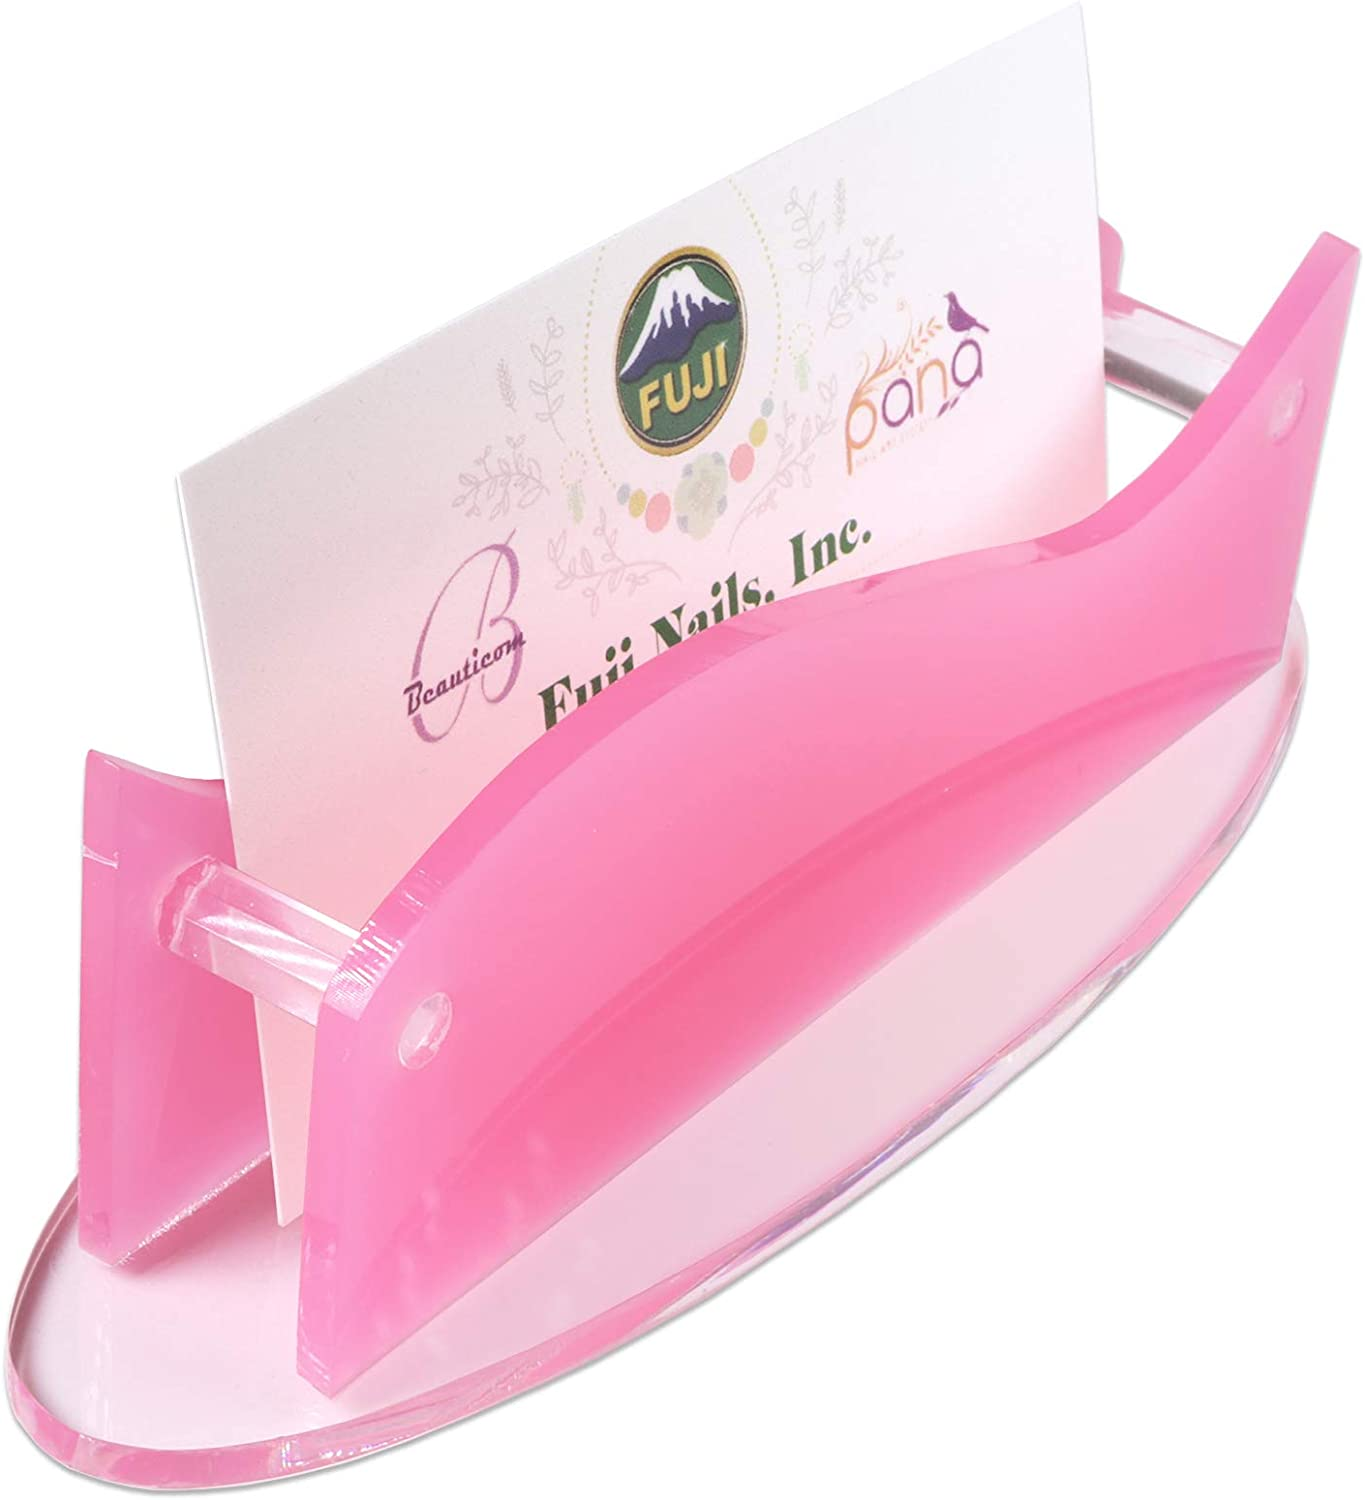 Beauticom Oval Lovely Import Pink Thick Genuine Free Shipping Holder Card Business Acrylic Of